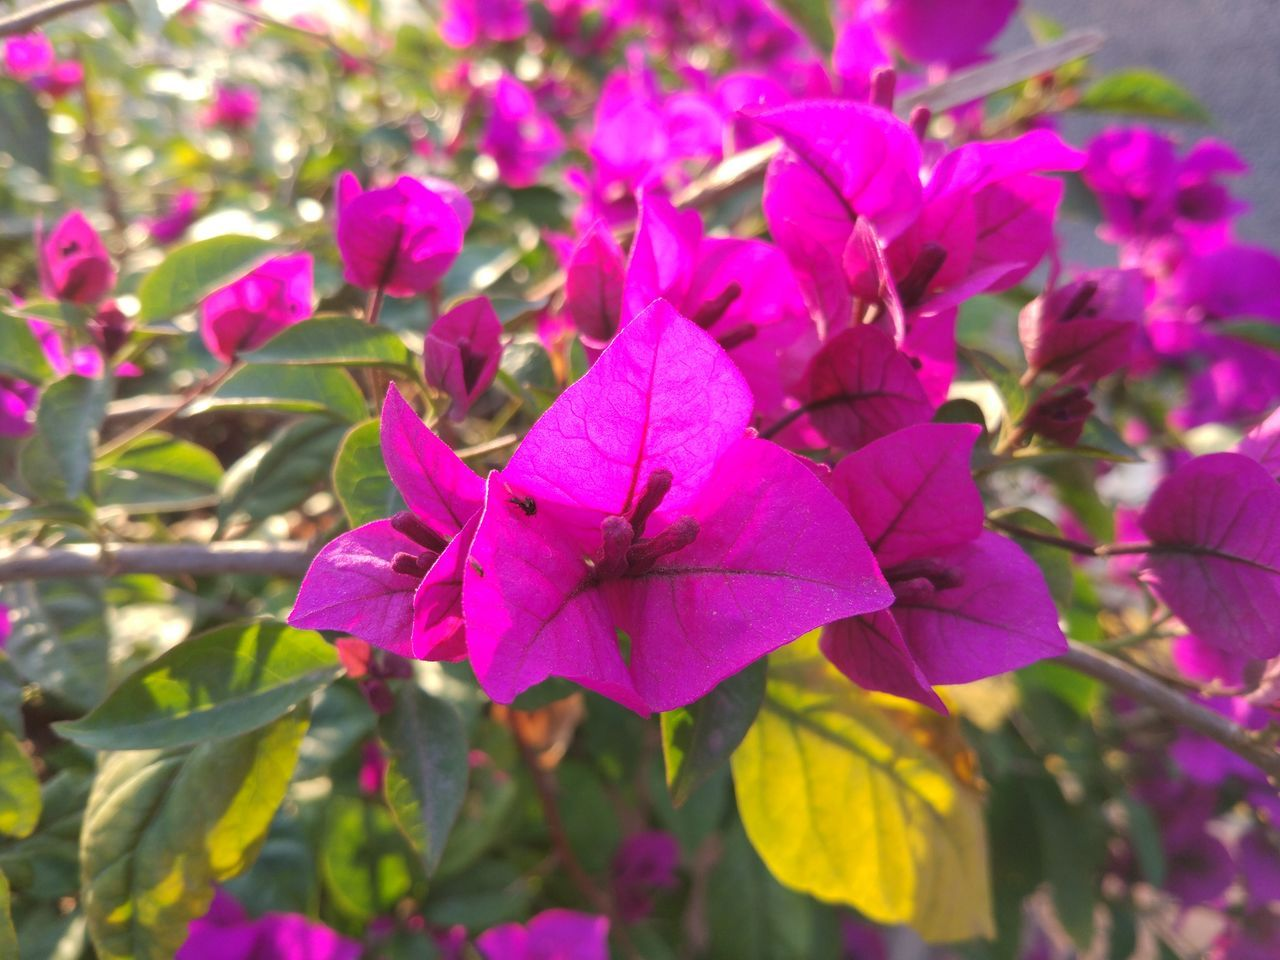 Flower Nature Freshness Petal Flower Head No People Morning MIphotography